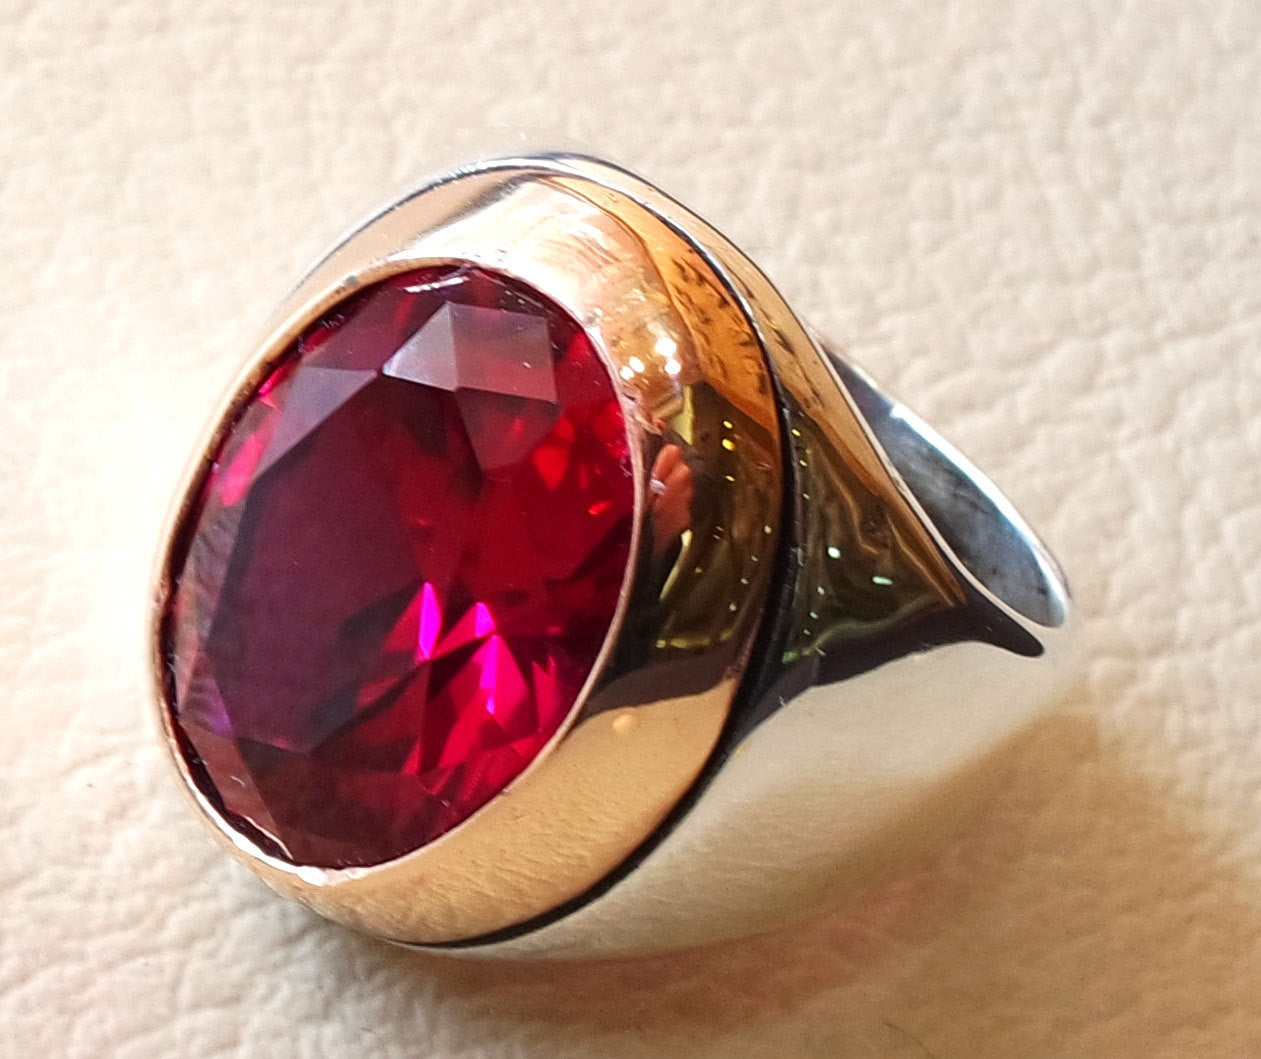 ruby identical synthetic stone high quality imitation corundum red color huge men ring sterling silver 925 any size bronze frame jewelry